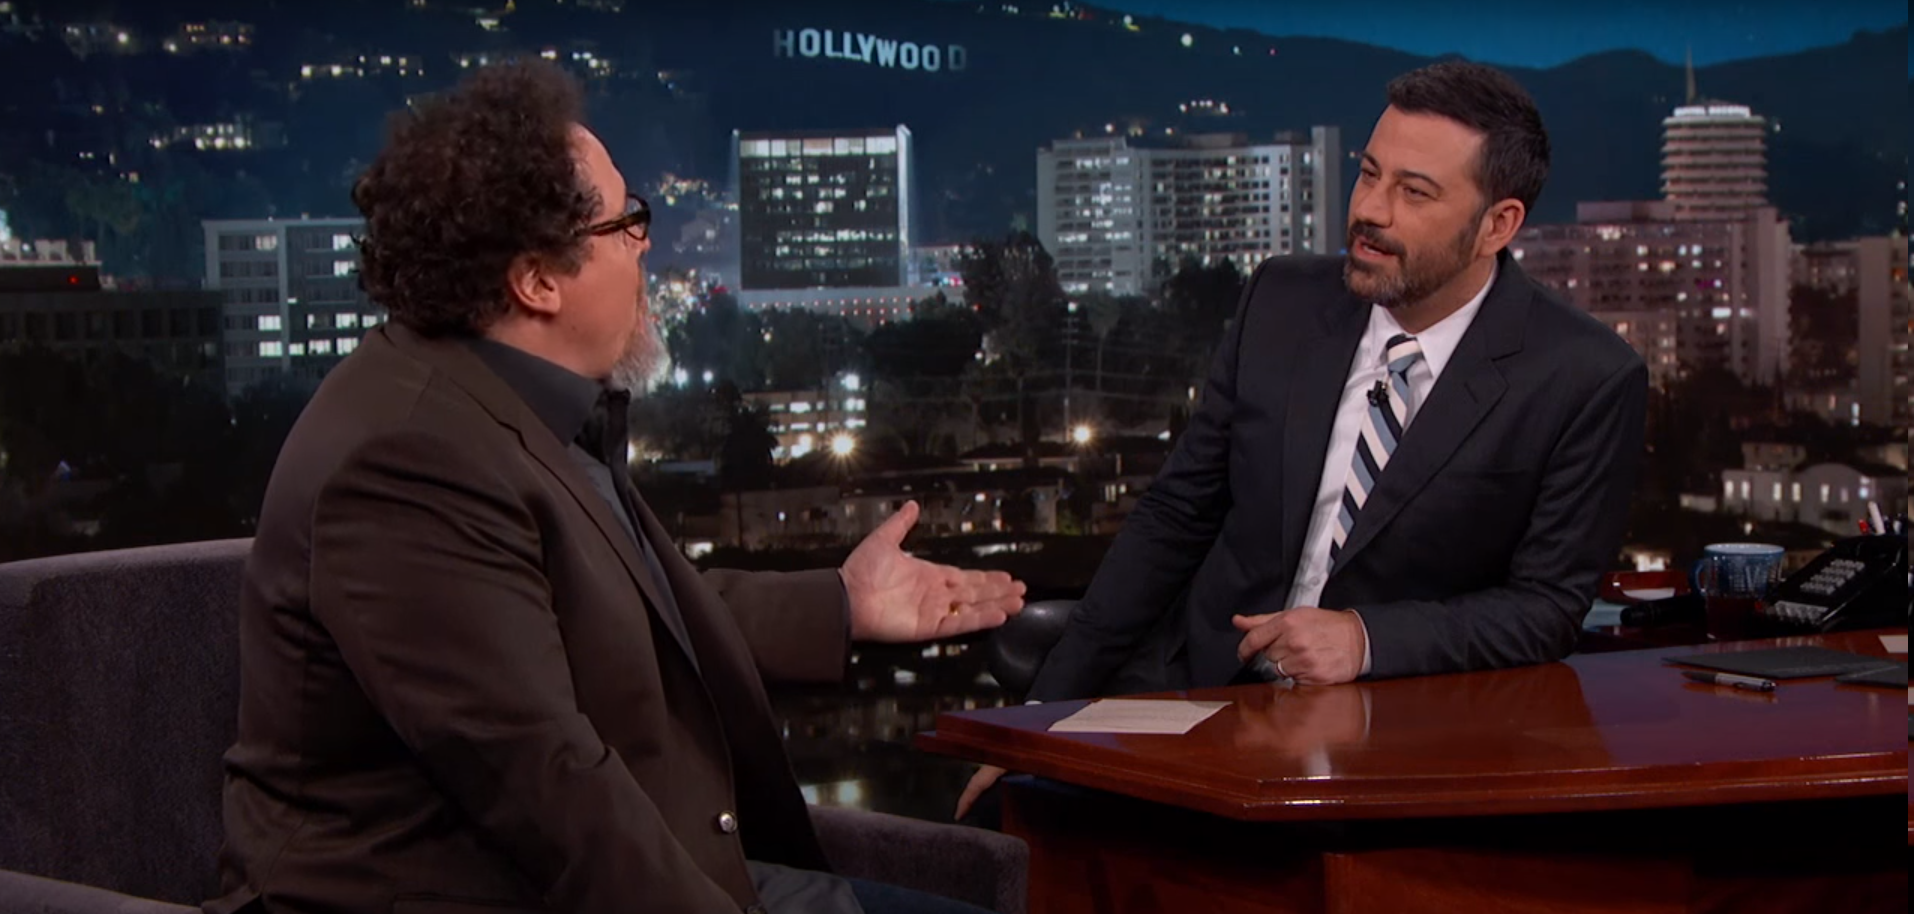 Jimmy Kimmel and Jon Favreau